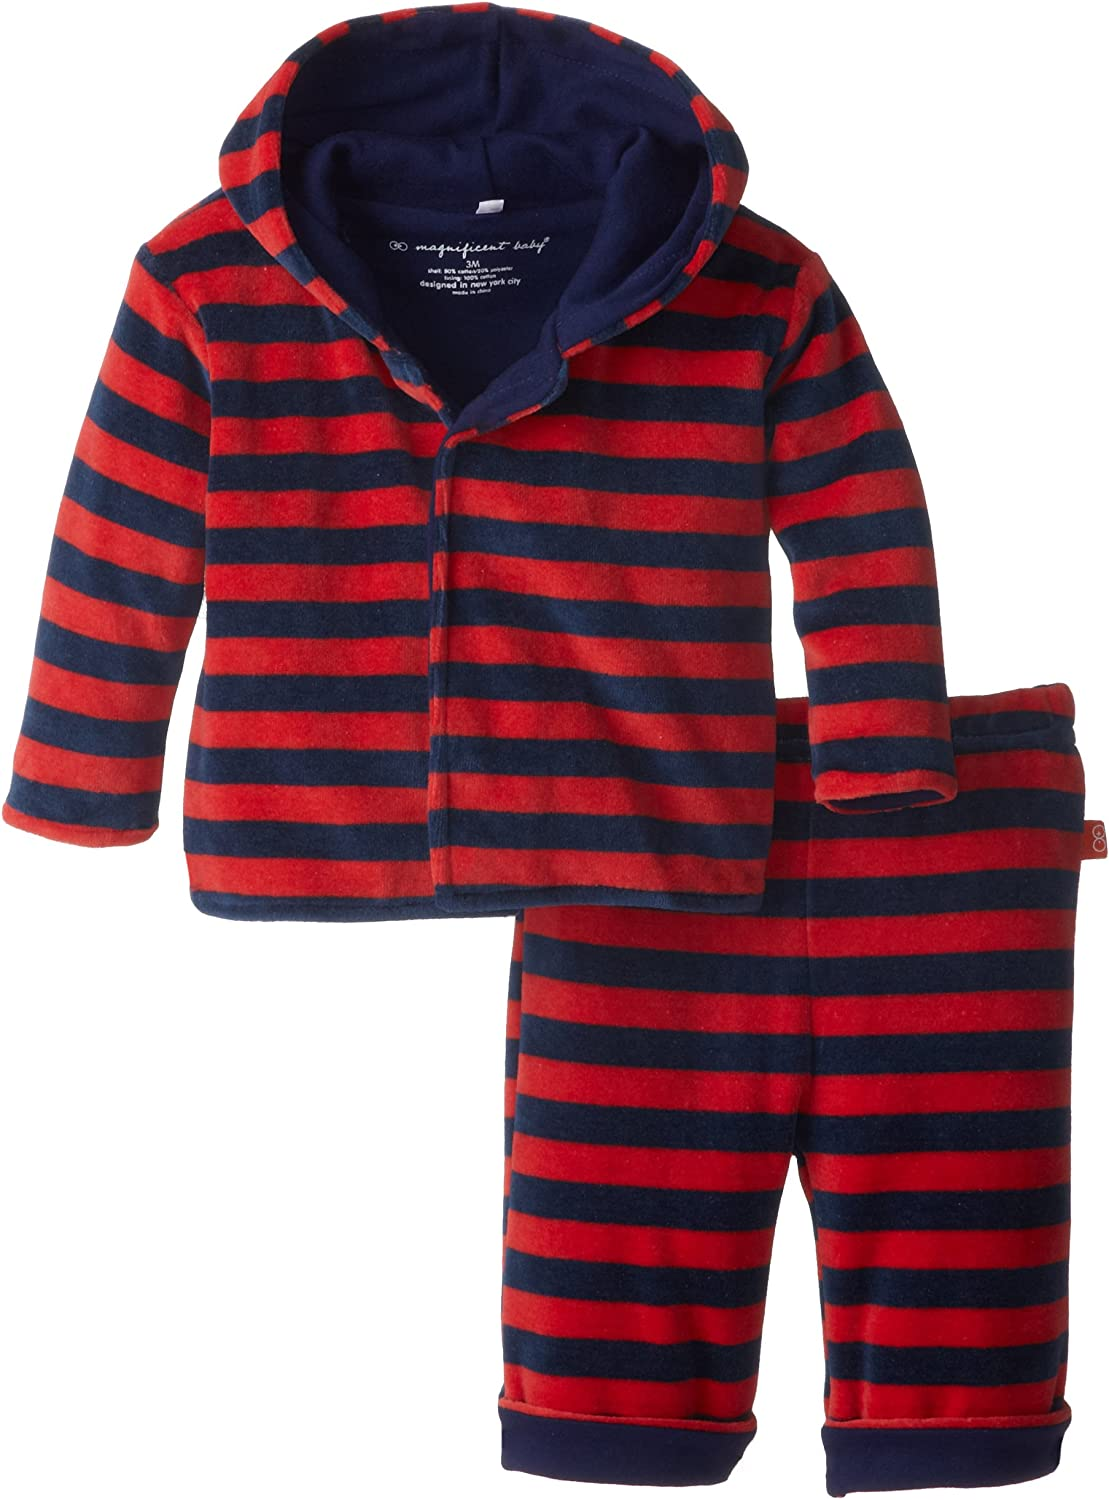 Magnificent Baby Baby Boys' Red Navy Velour Hoodie and Pants